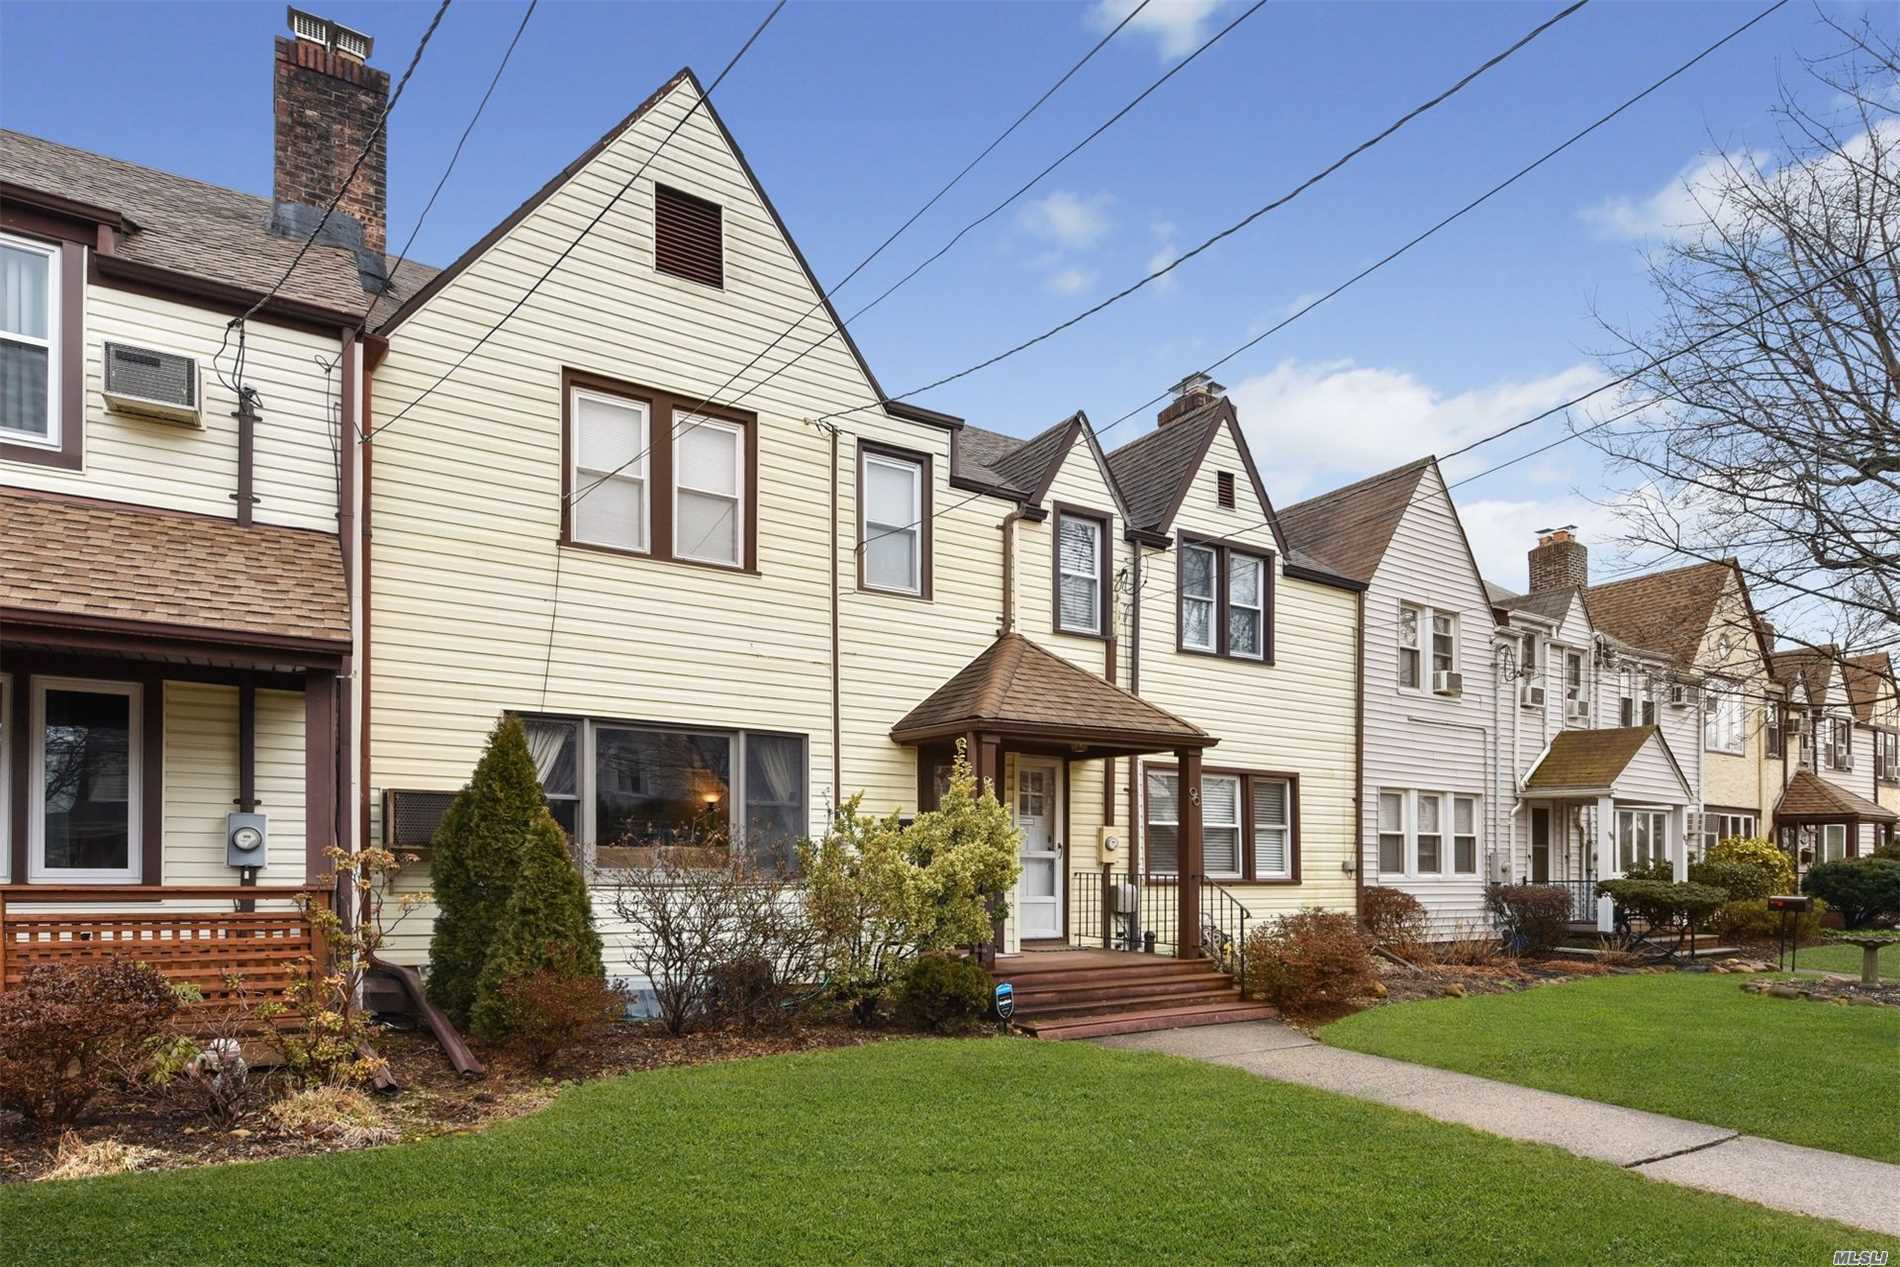 Charming & Updated Tudor Townhouse In Roslyn Schools. All Updated With Private Yard & 1 Car Garage. A Rare Find. Must See